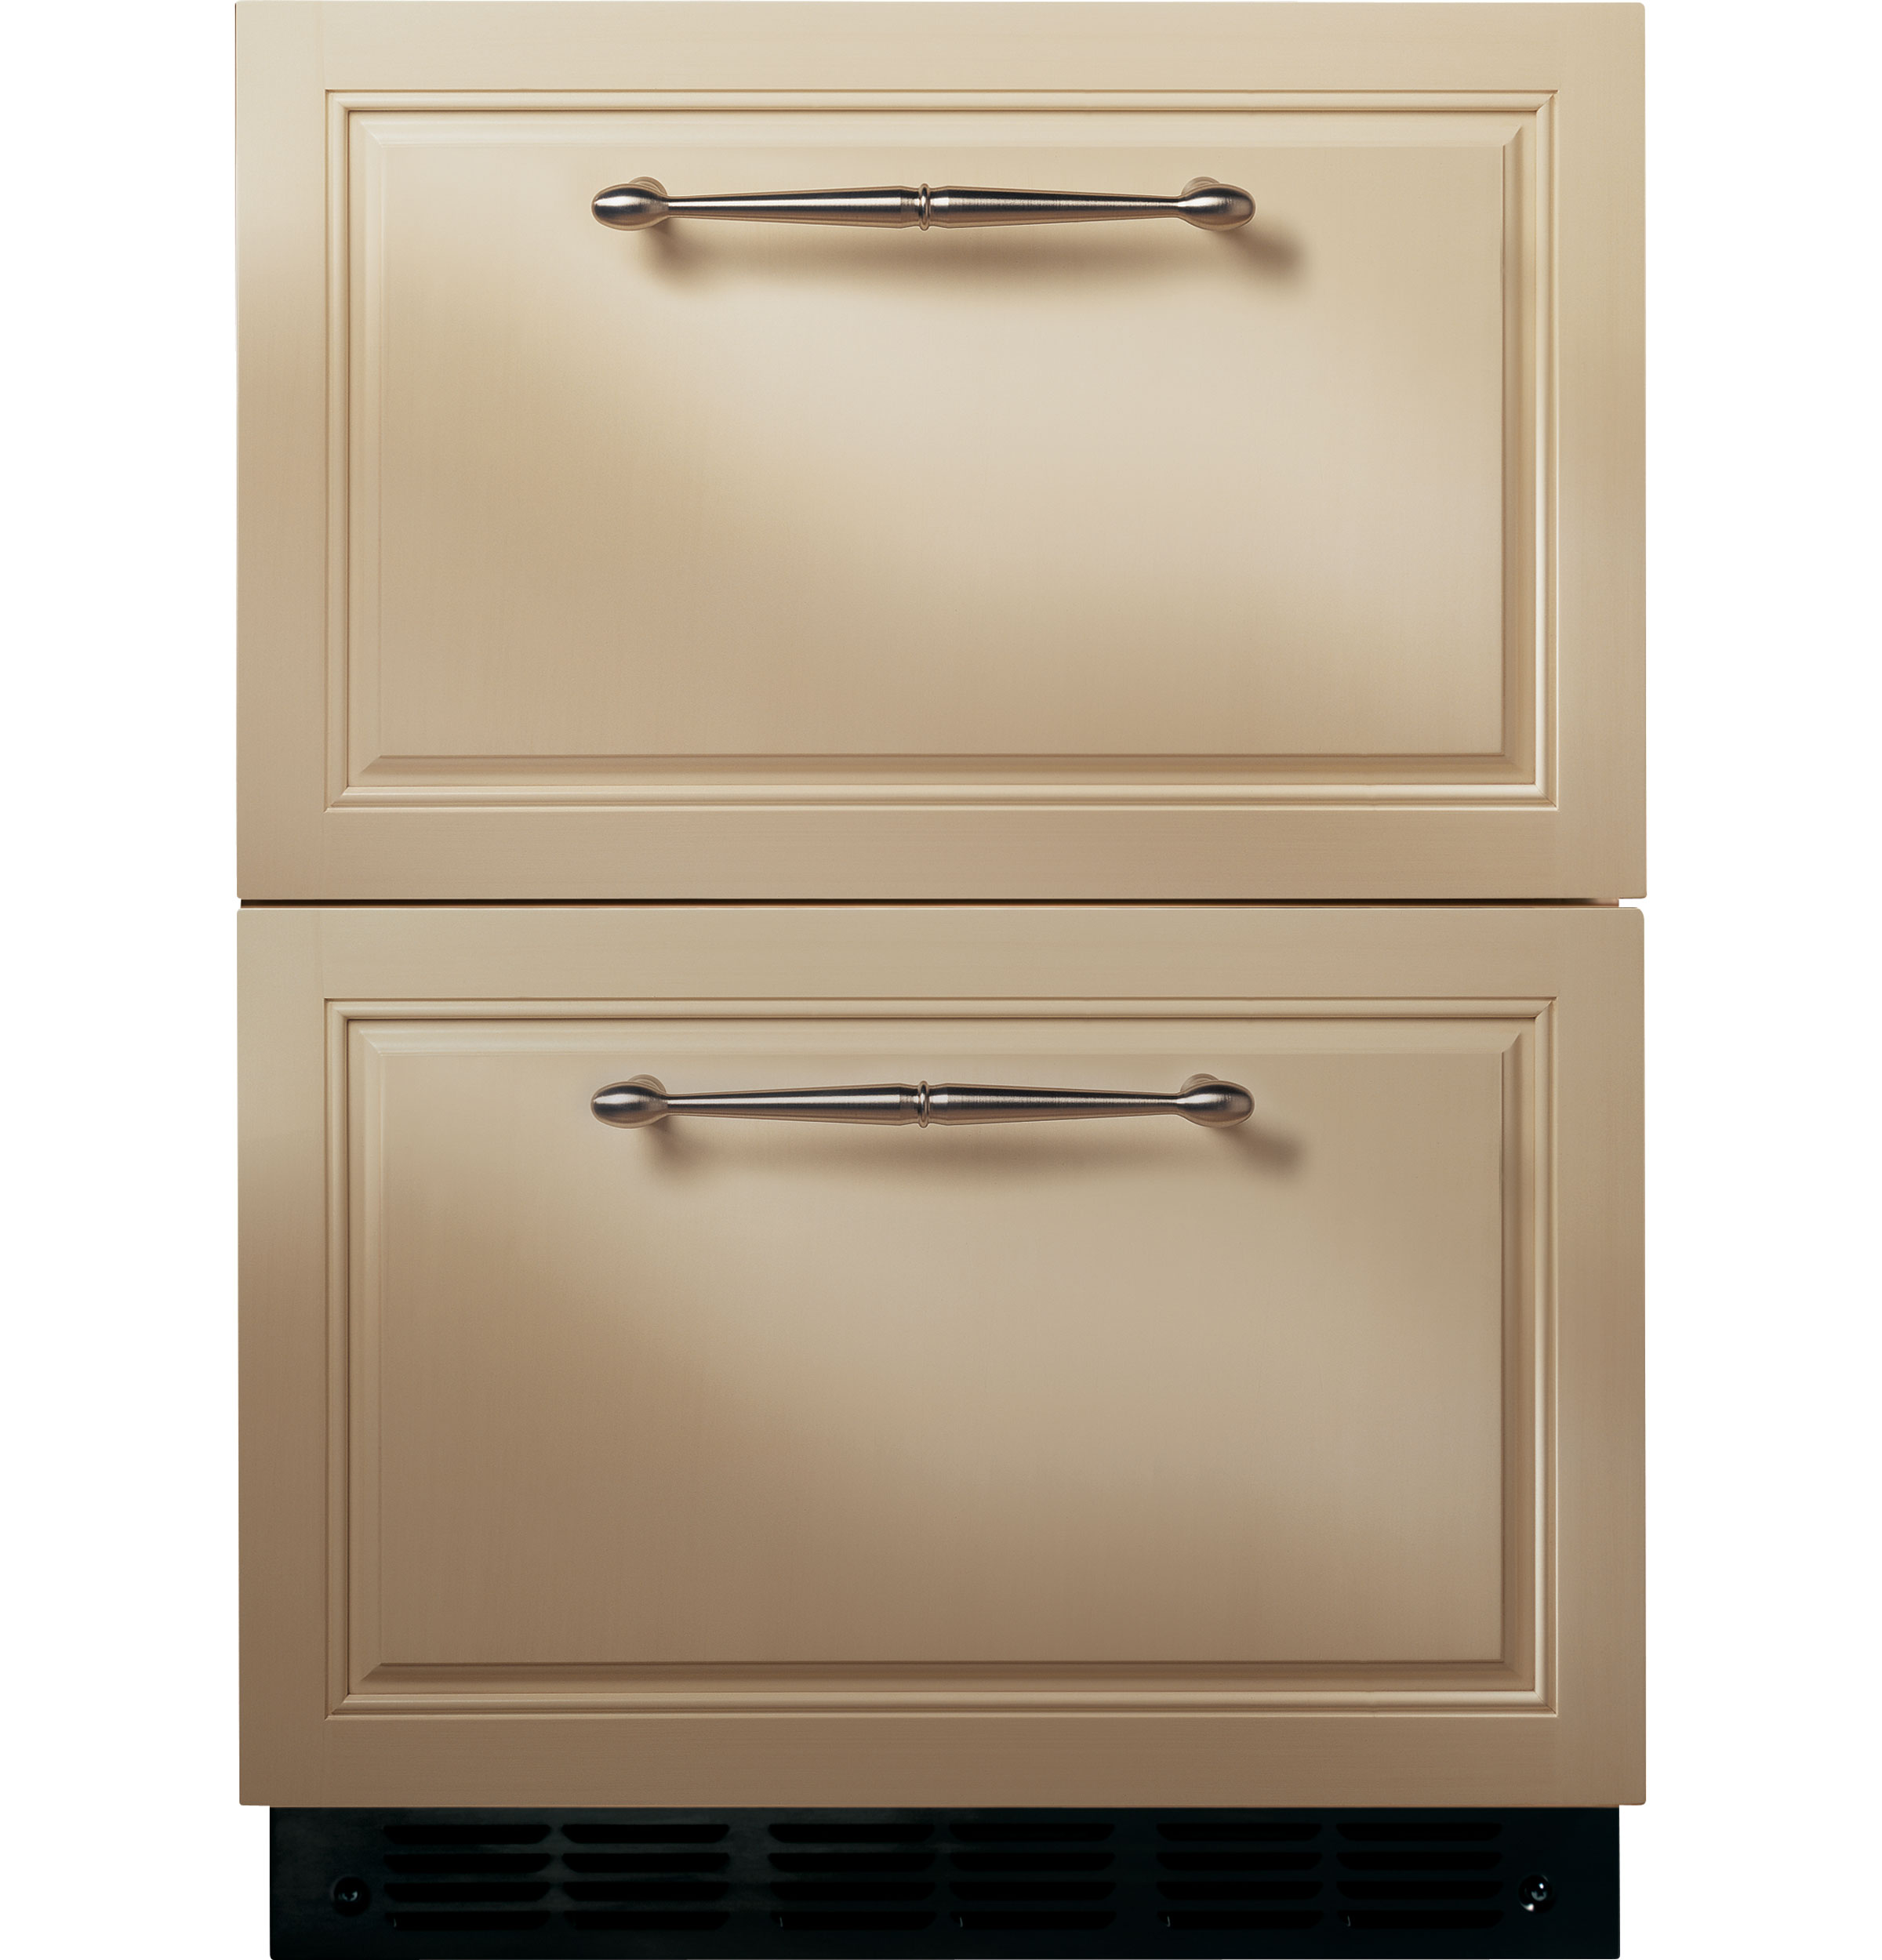 Monogram Monogram Double-Drawer Refrigerator Module